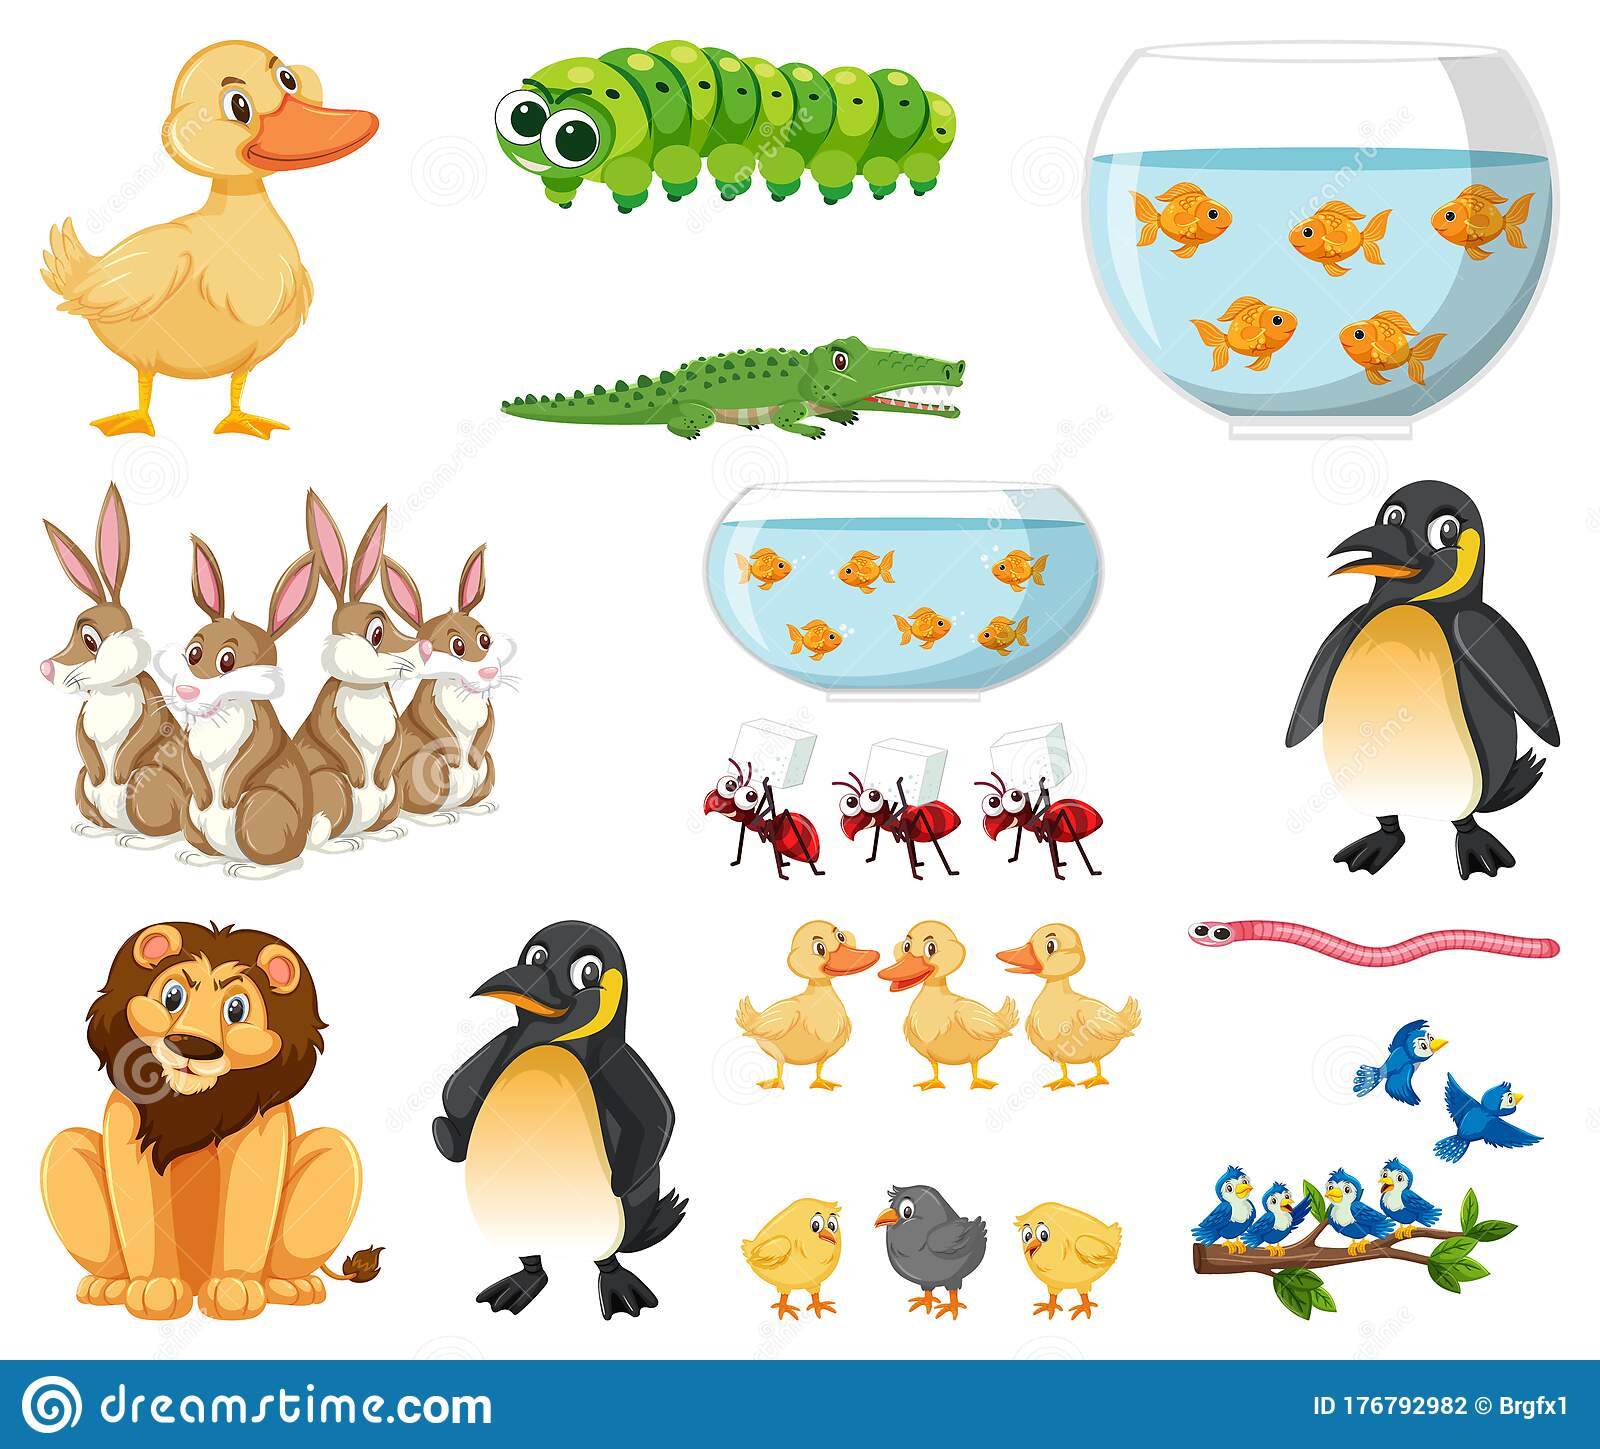 Group Different Types Animals Stock Illustrations – 50 Group Different  Types Animals Stock Illustrations, Vectors & Clipart - Dreamstime